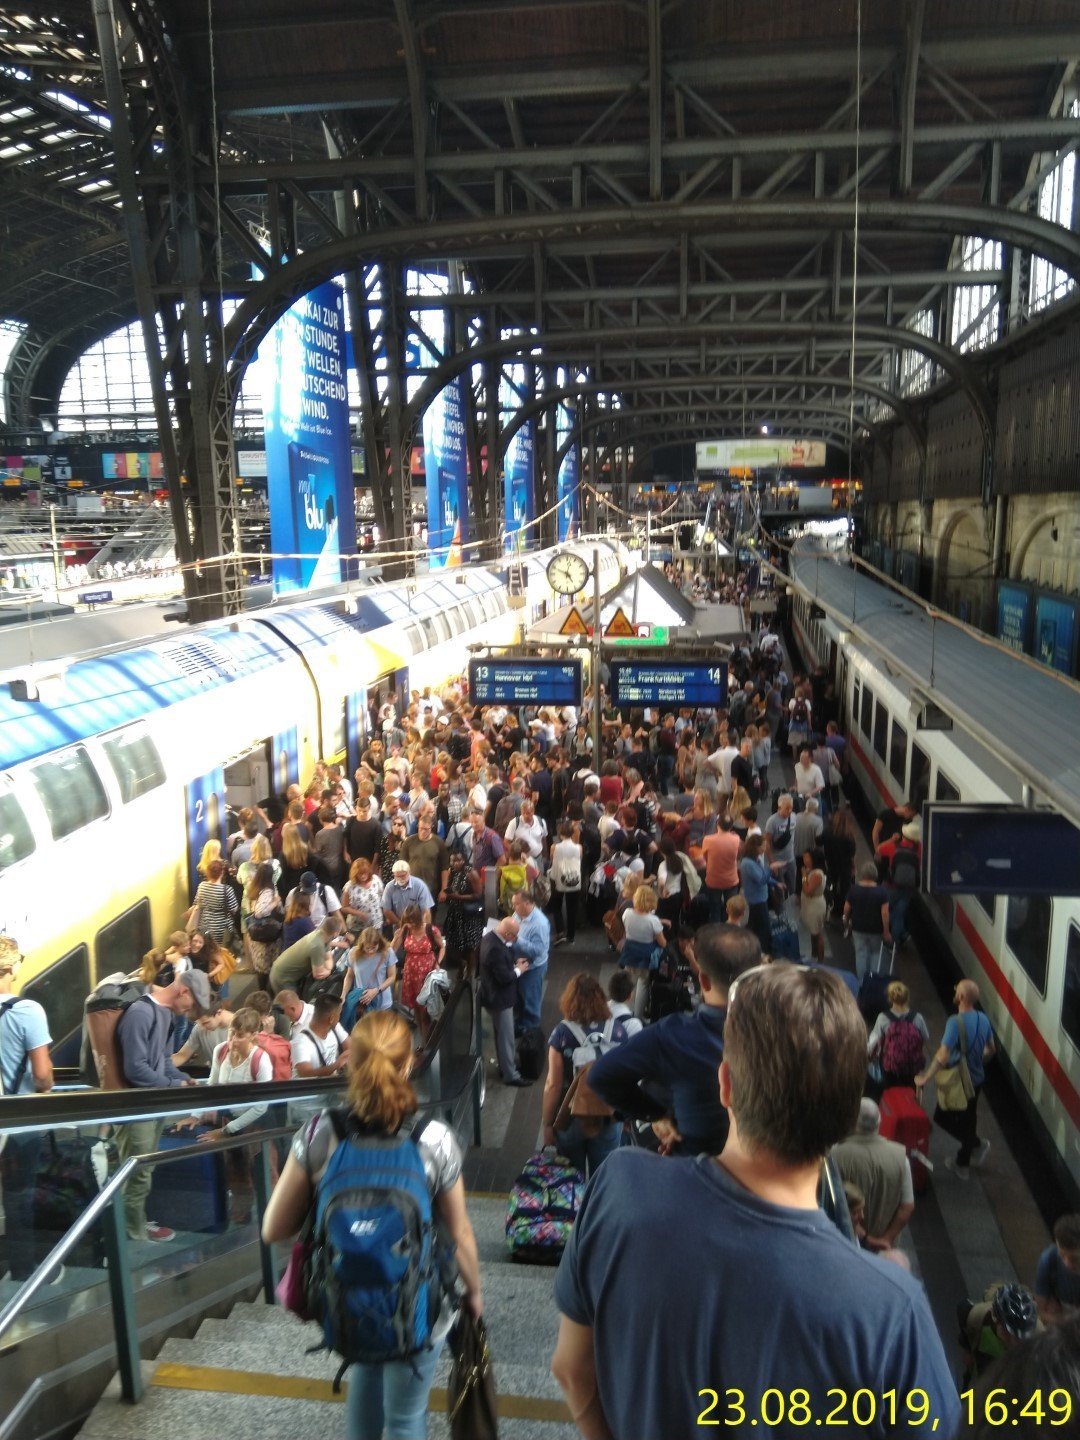 20 August 2019 Hamburg Hbf, das war mal total normal